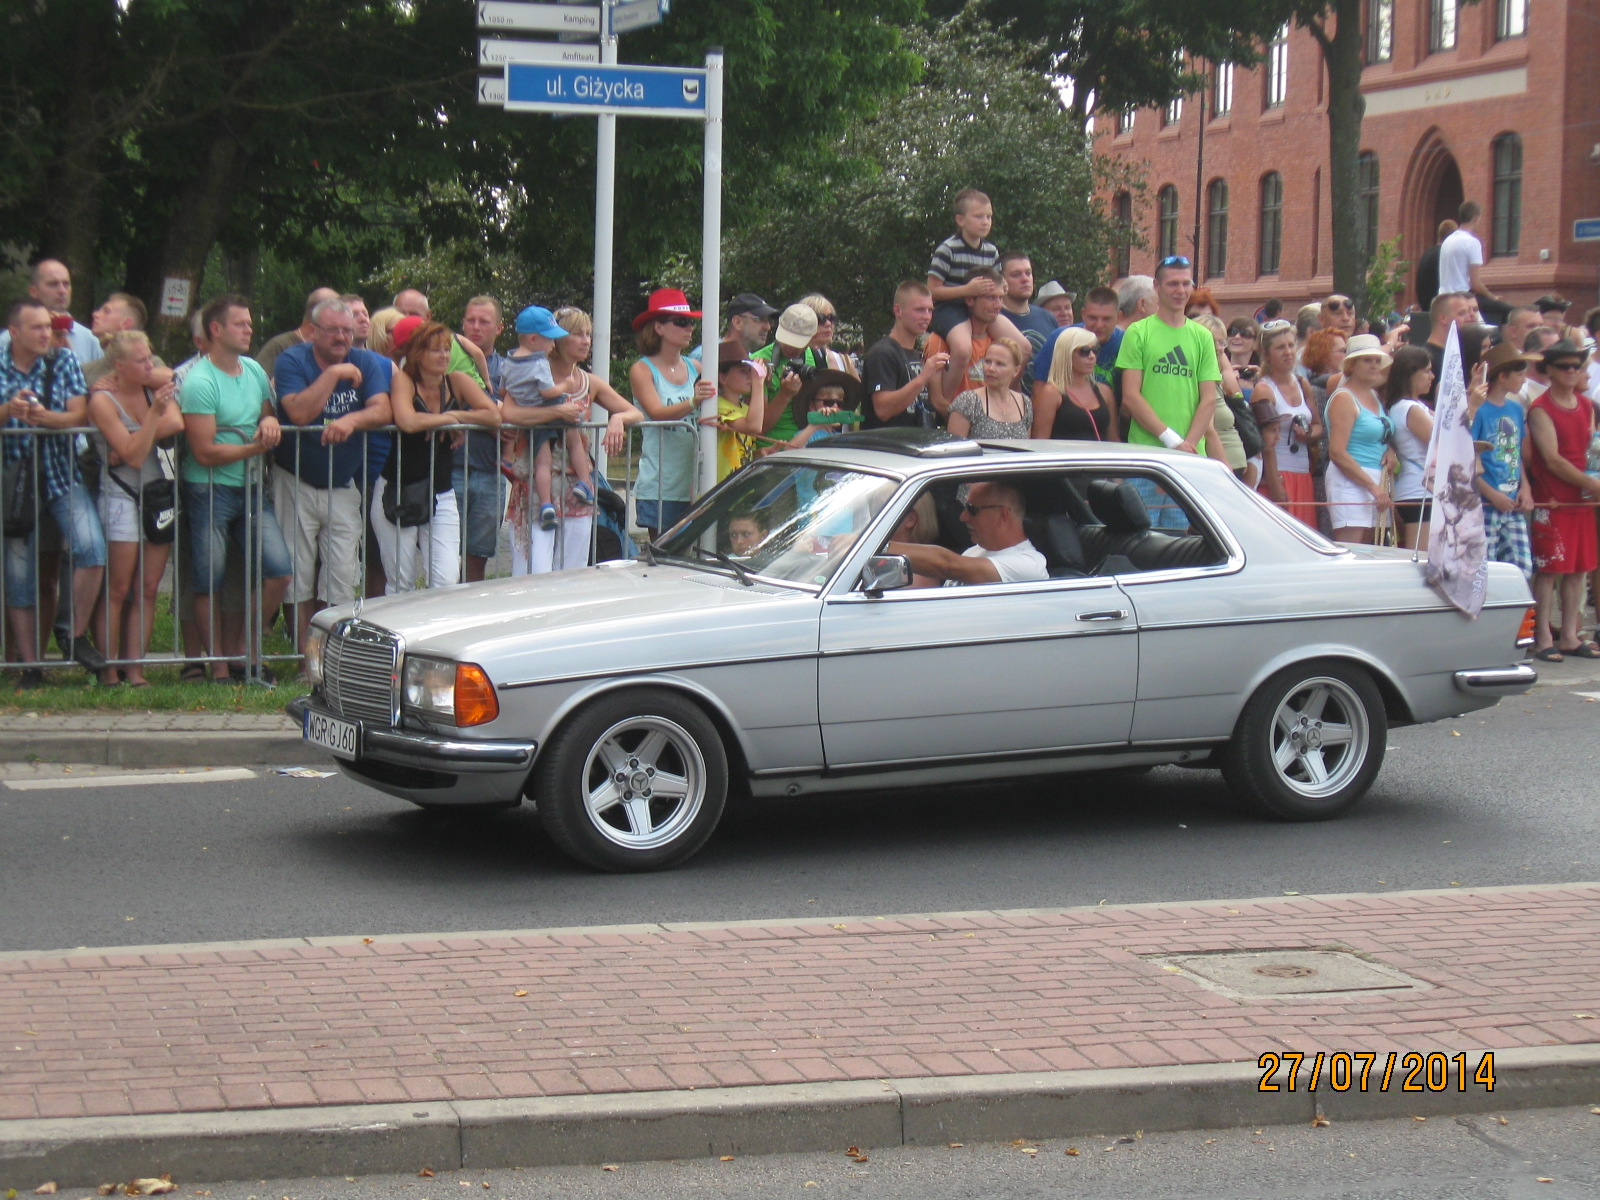 http://124coupe.pl/hosting/images/img2841.jpg